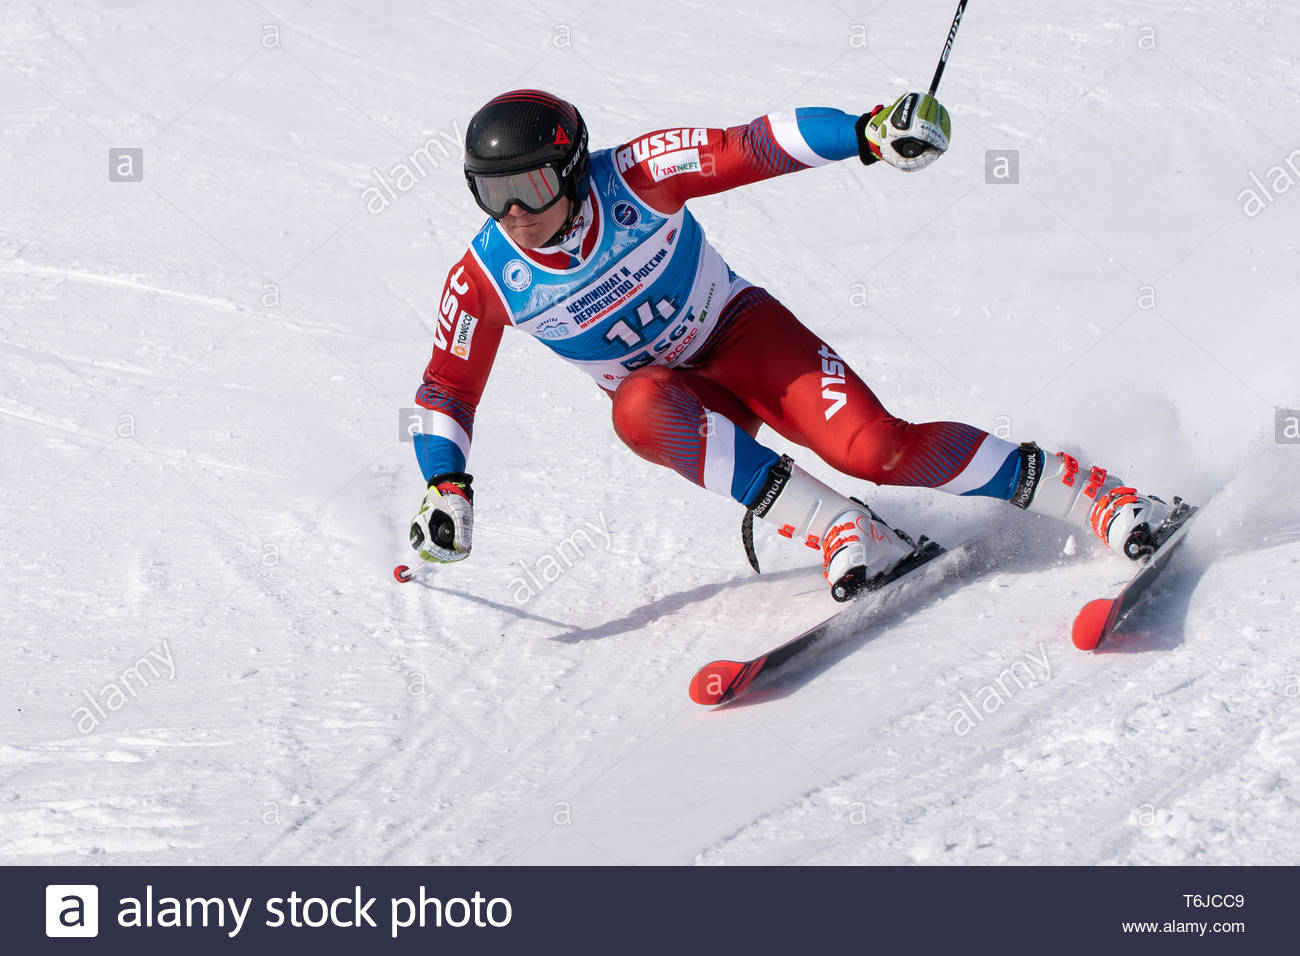 KAMCHATKA PENINSULA, RUSSIA - APR 1, 2019: Russian Alpine Skiing Cup, International Ski Federation (FIS) Championship - giant slalom. Mountain skier T - Stock Image